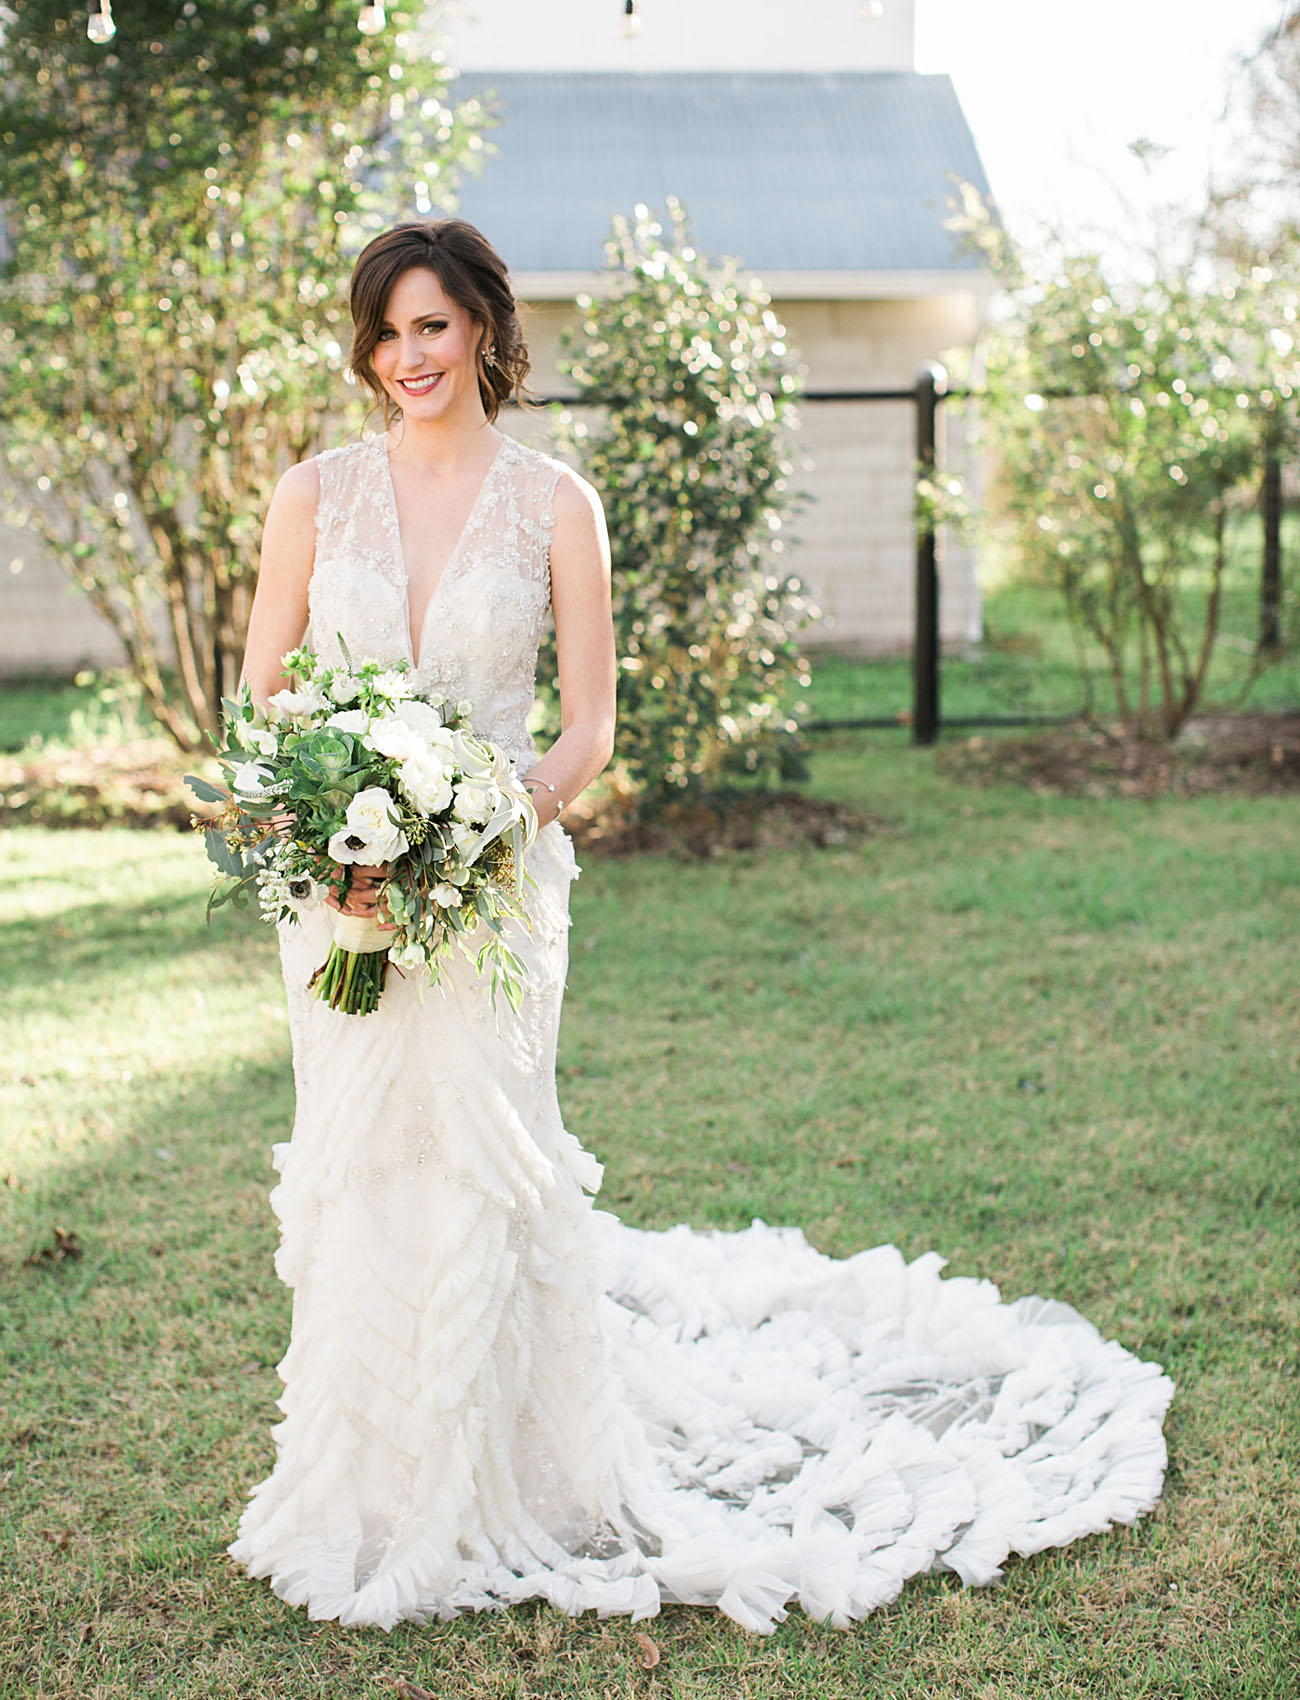 The wedding bouquet was neutral and textural, and worked perfectly with the dress